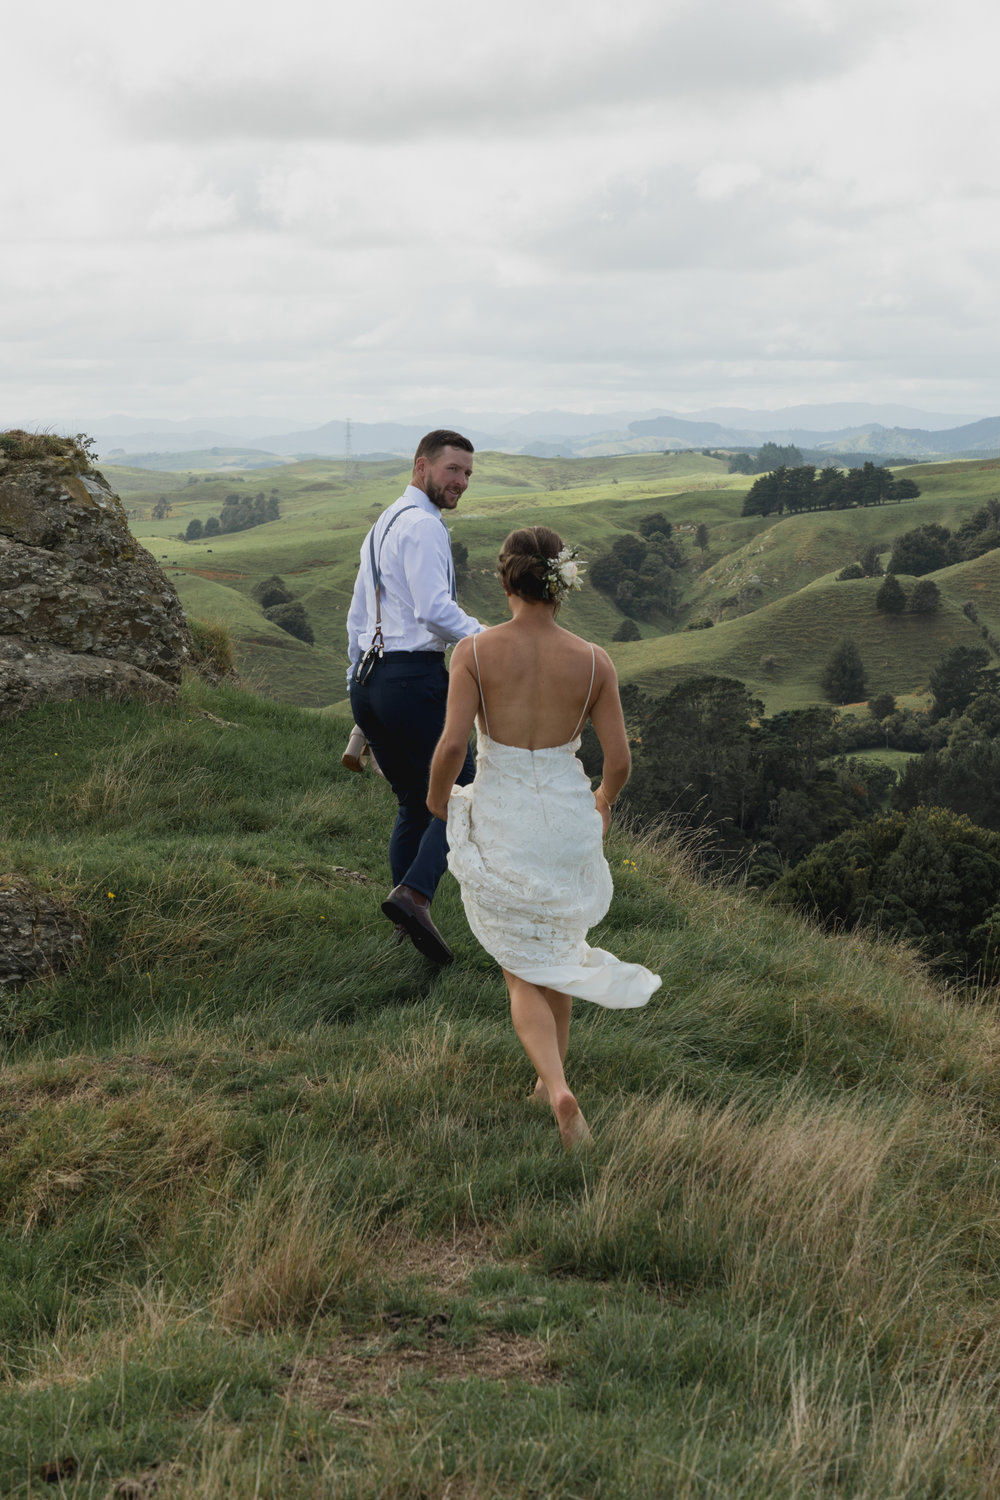 wedding-at-the-red-barn-new-zealand-wedding-photographer-groom-leading-bride-on-hilltop.jpg